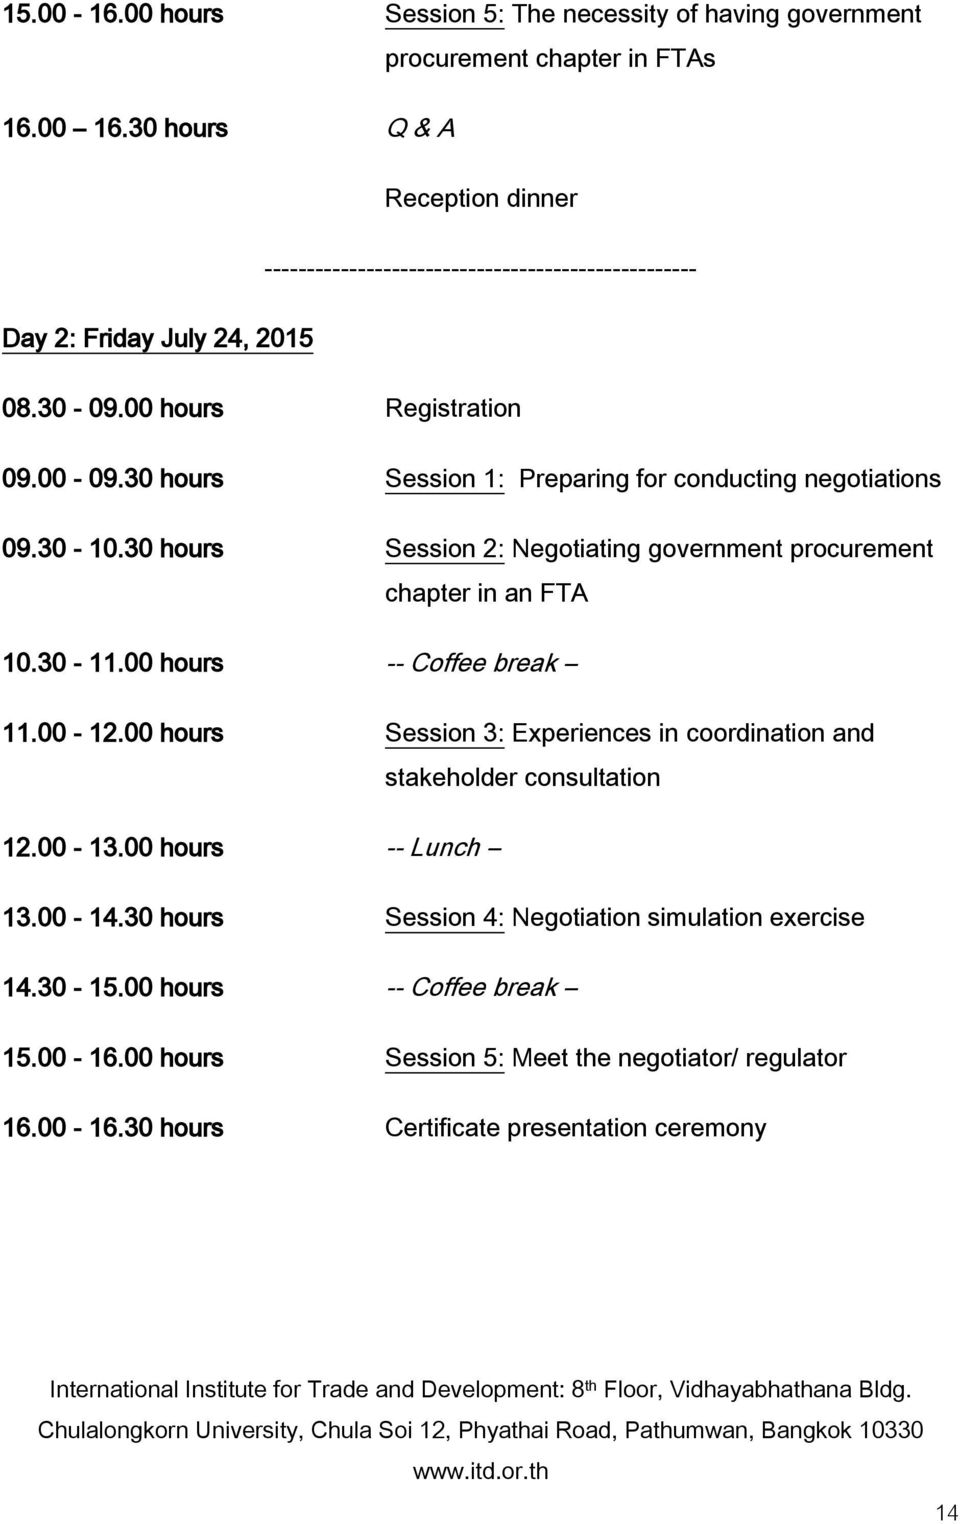 30 hours Session 1: Preparing for conducting negotiations 09.30-10.30 hours Session 2: Negotiating government procurement chapter in an FTA 10.30-11.00 hours -- Coffee break 11.